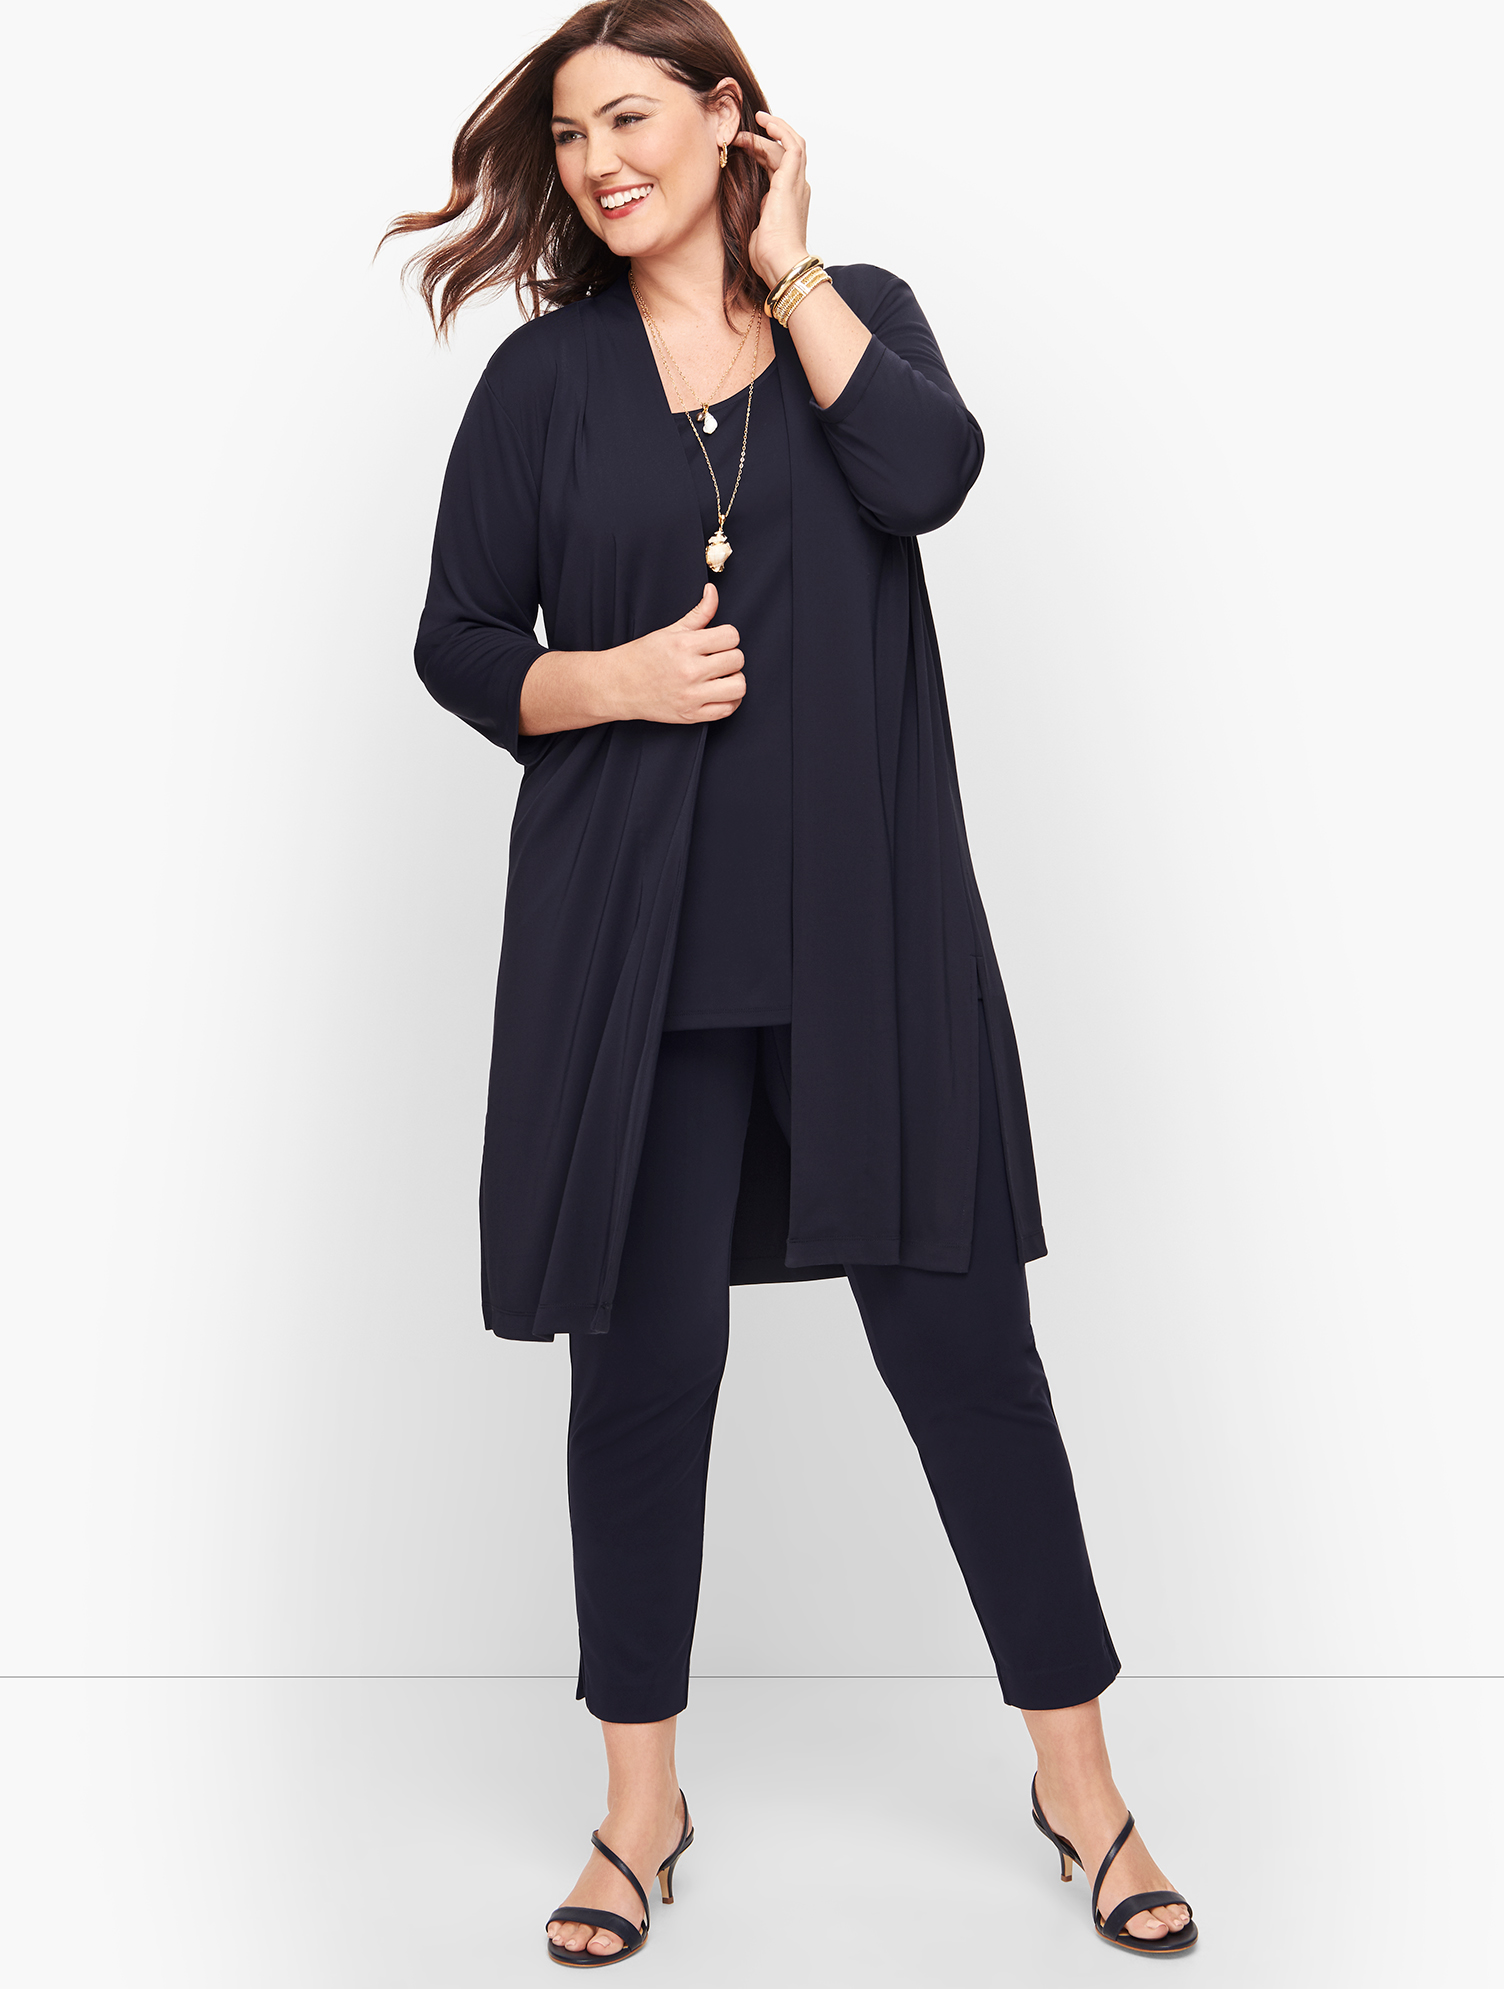 This knee-length open cardigan in our classic knit jersey fabric is a style staple. Features Sleeve length: Three-QuarterHits: Below hipNeckline: No CloseUnlinedImported Fit: Plus: 40 inches; Plus Petite: 38 inches Material: 95% Polyester; 5% Spandex Care: Machine Wash; Reshape, Lay Flat To Dry Knit Jersey Open Cardigan Sweater - Blue - 3X Talbots